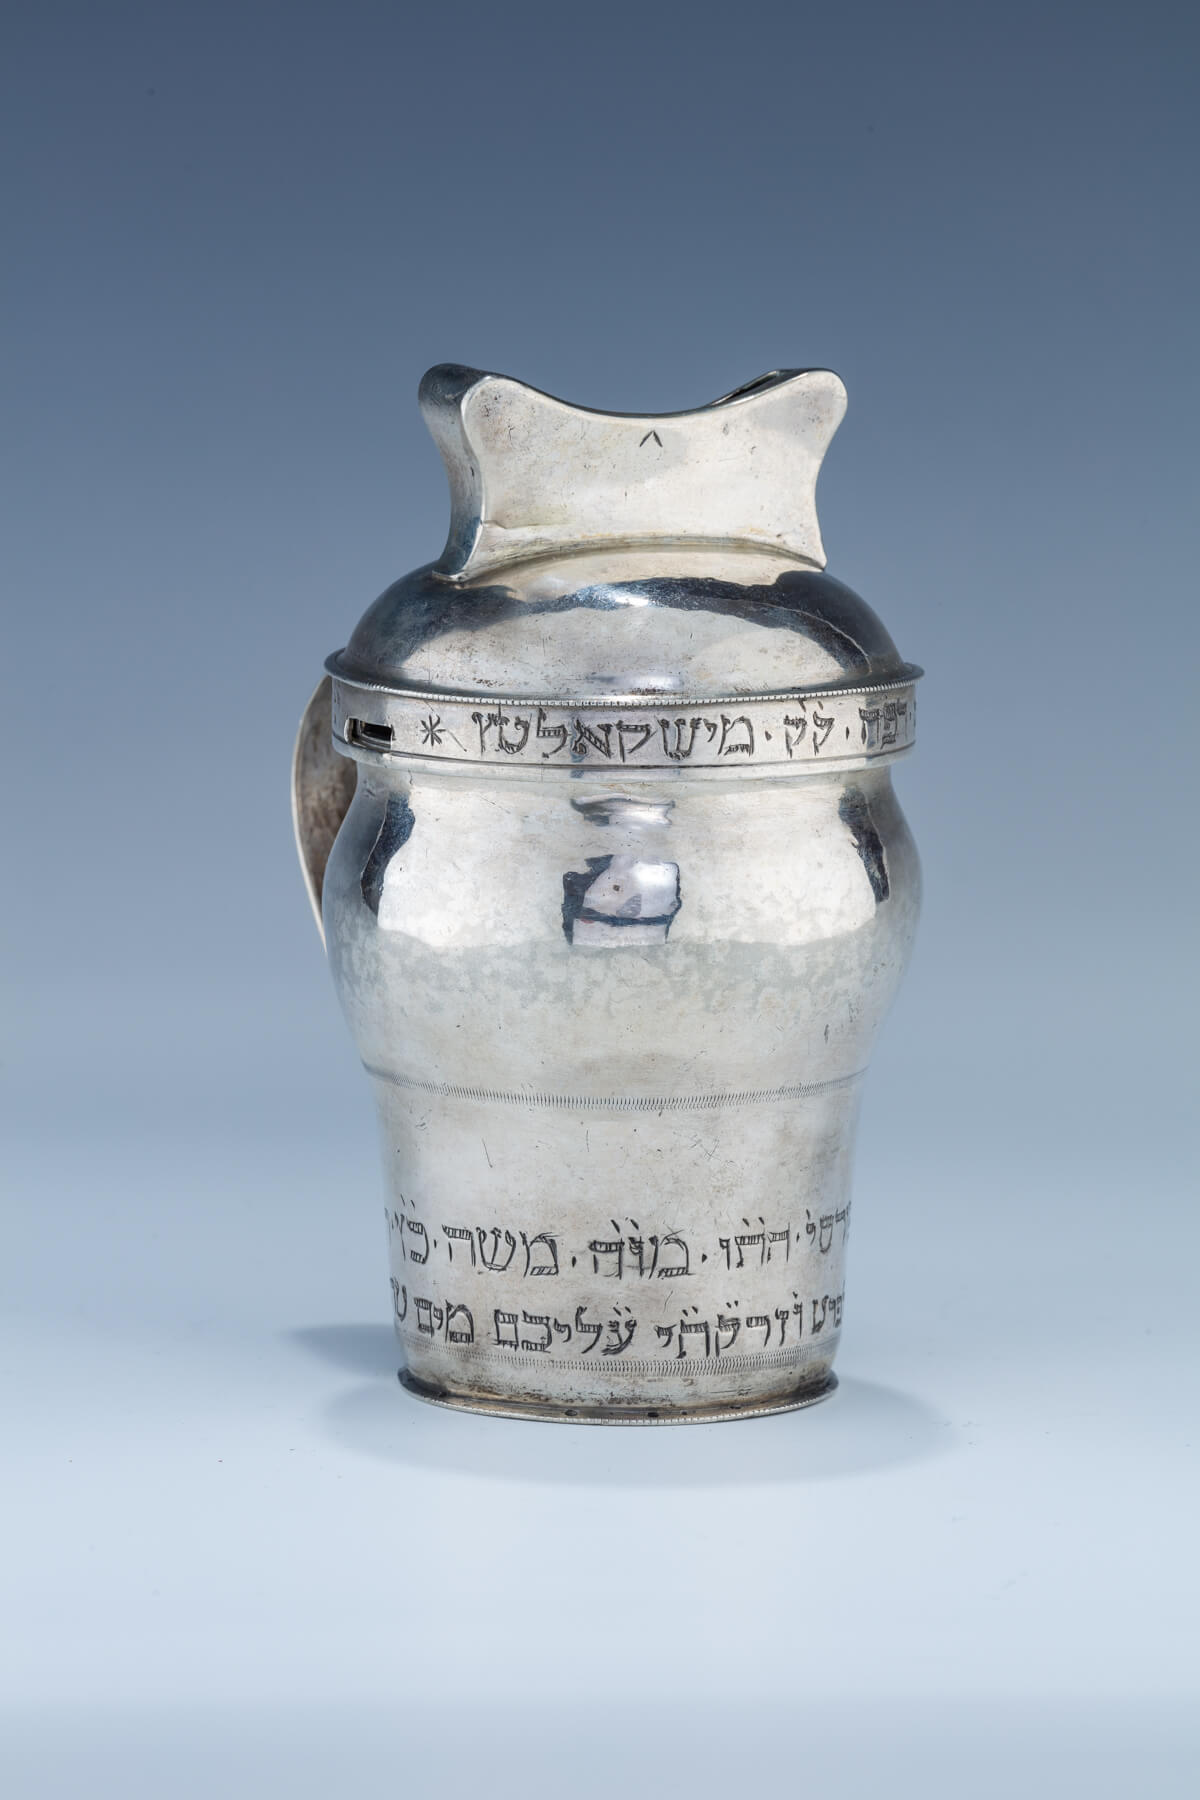 76. An Exceptional Silver Charity Container